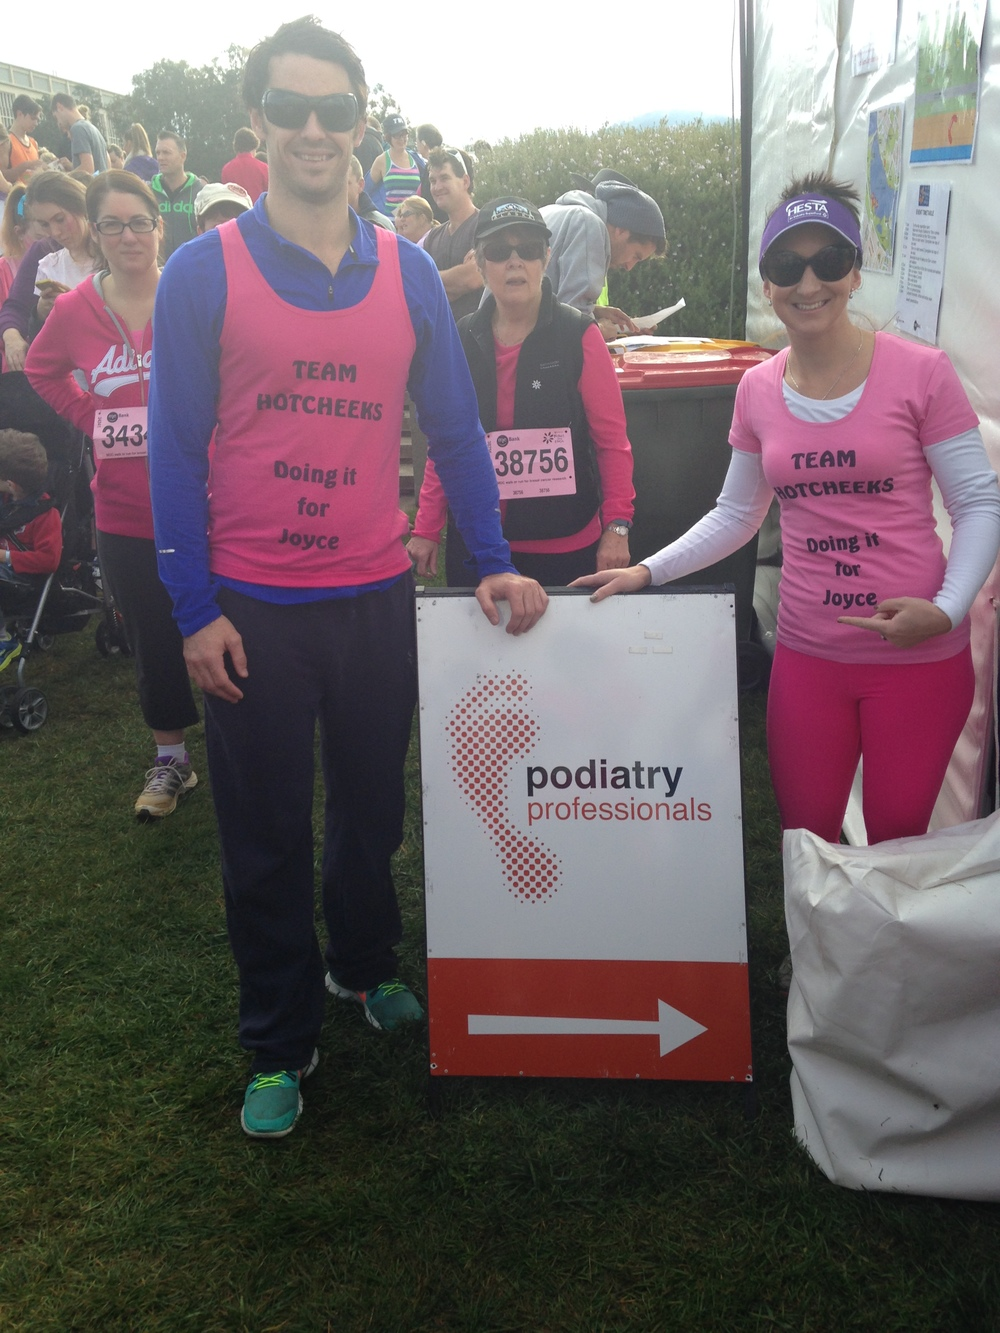 Matthew and Rebecca on behalf of Podiatry Professionals